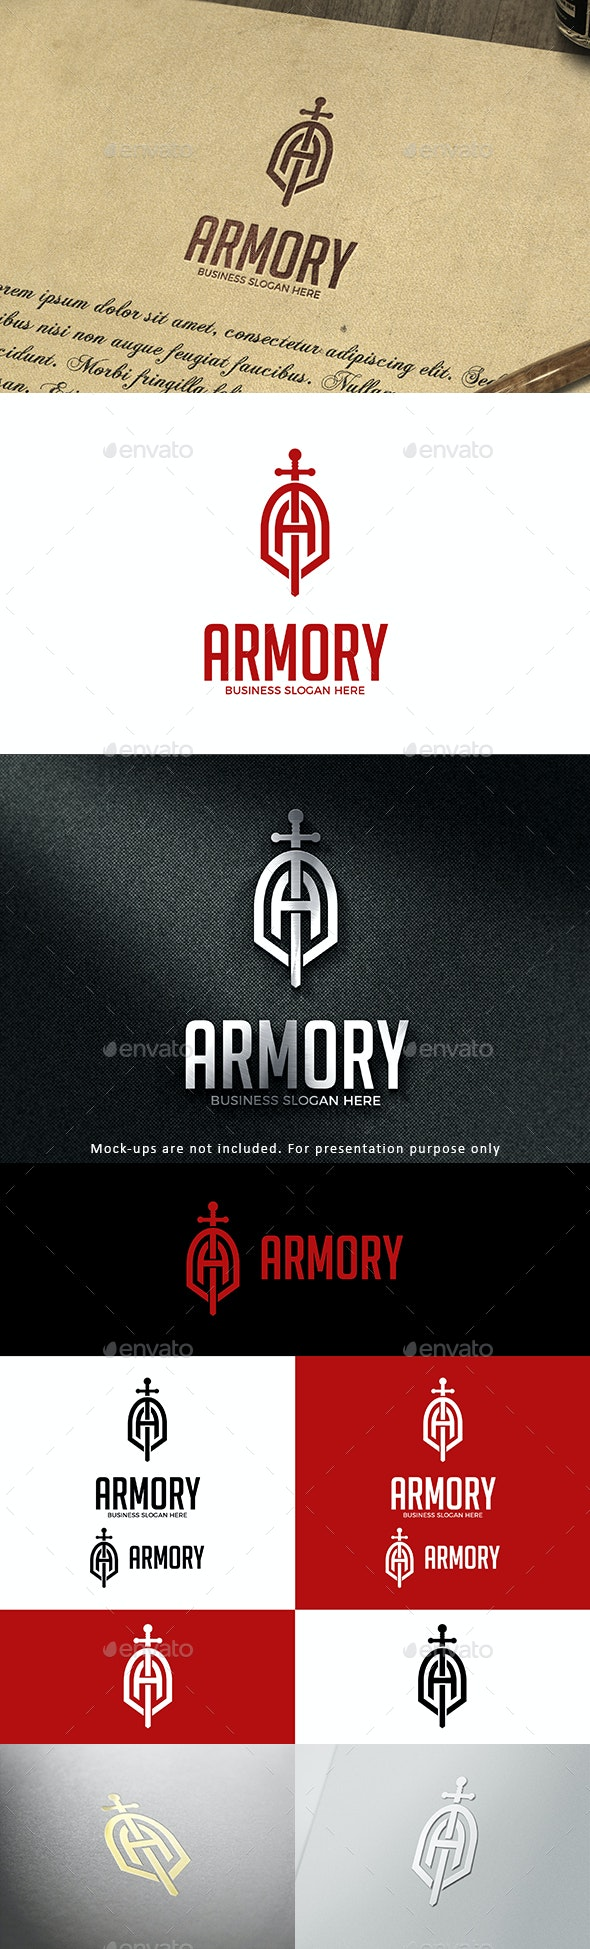 Sword Shield Logo Letter A - Armory - Letters Logo Templates